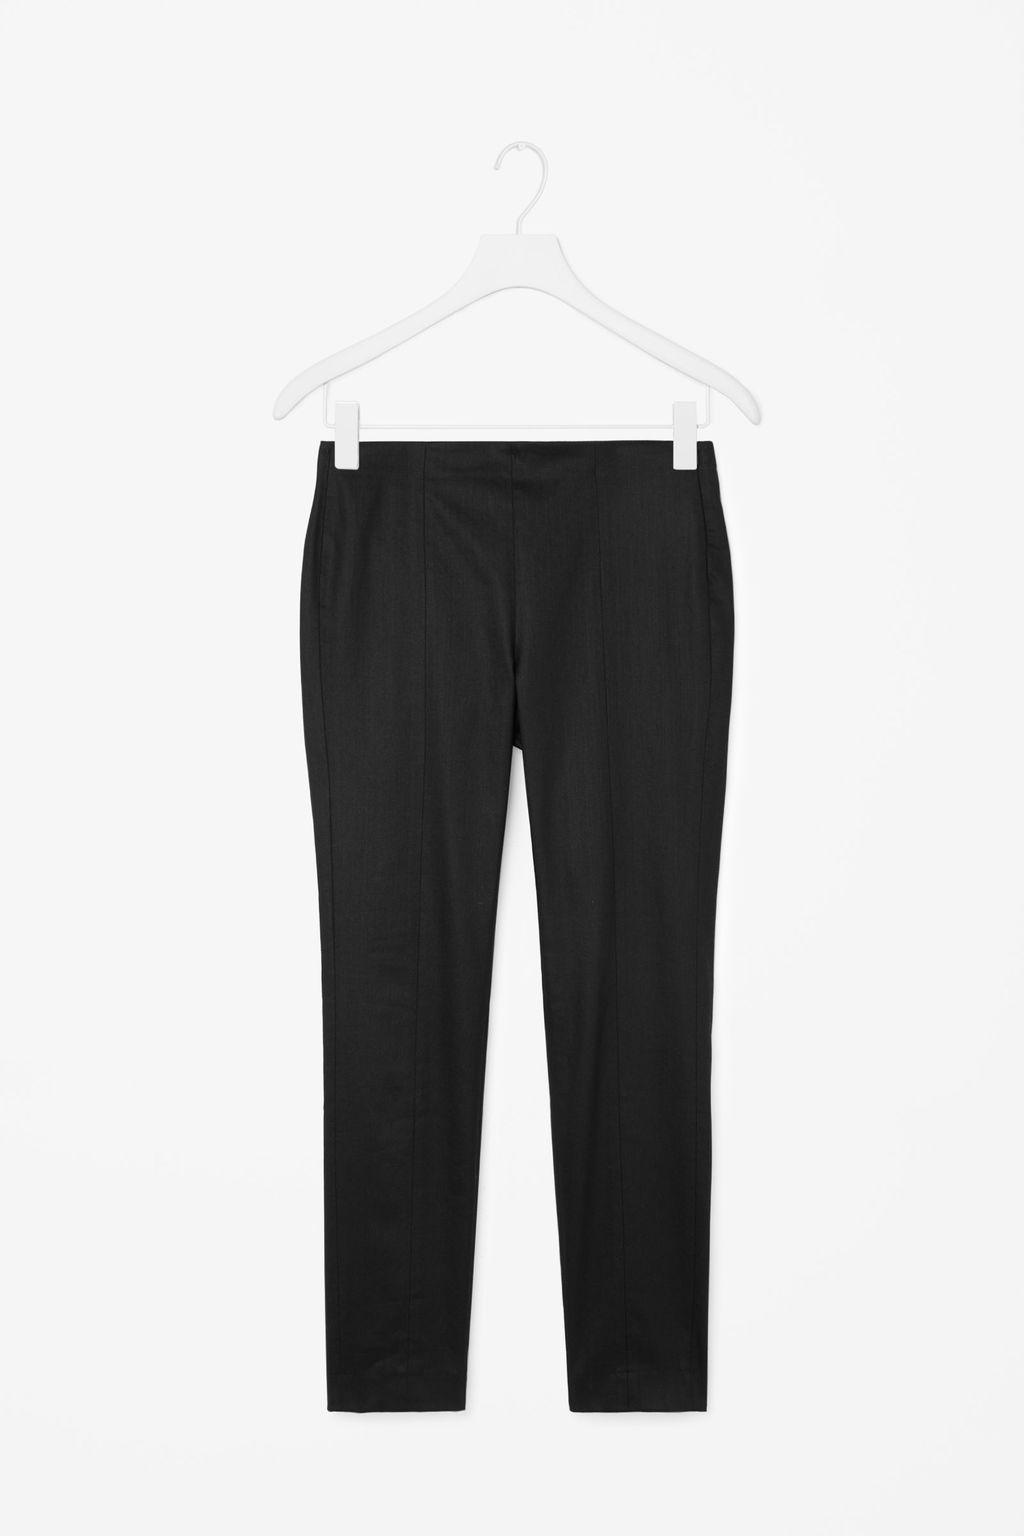 Skinny Side Zip Trousers - length: standard; pattern: plain; waist: mid/regular rise; predominant colour: black; occasions: work; fibres: cotton - stretch; fit: skinny/tight leg; pattern type: fabric; texture group: woven light midweight; style: standard; season: a/w 2015; wardrobe: basic